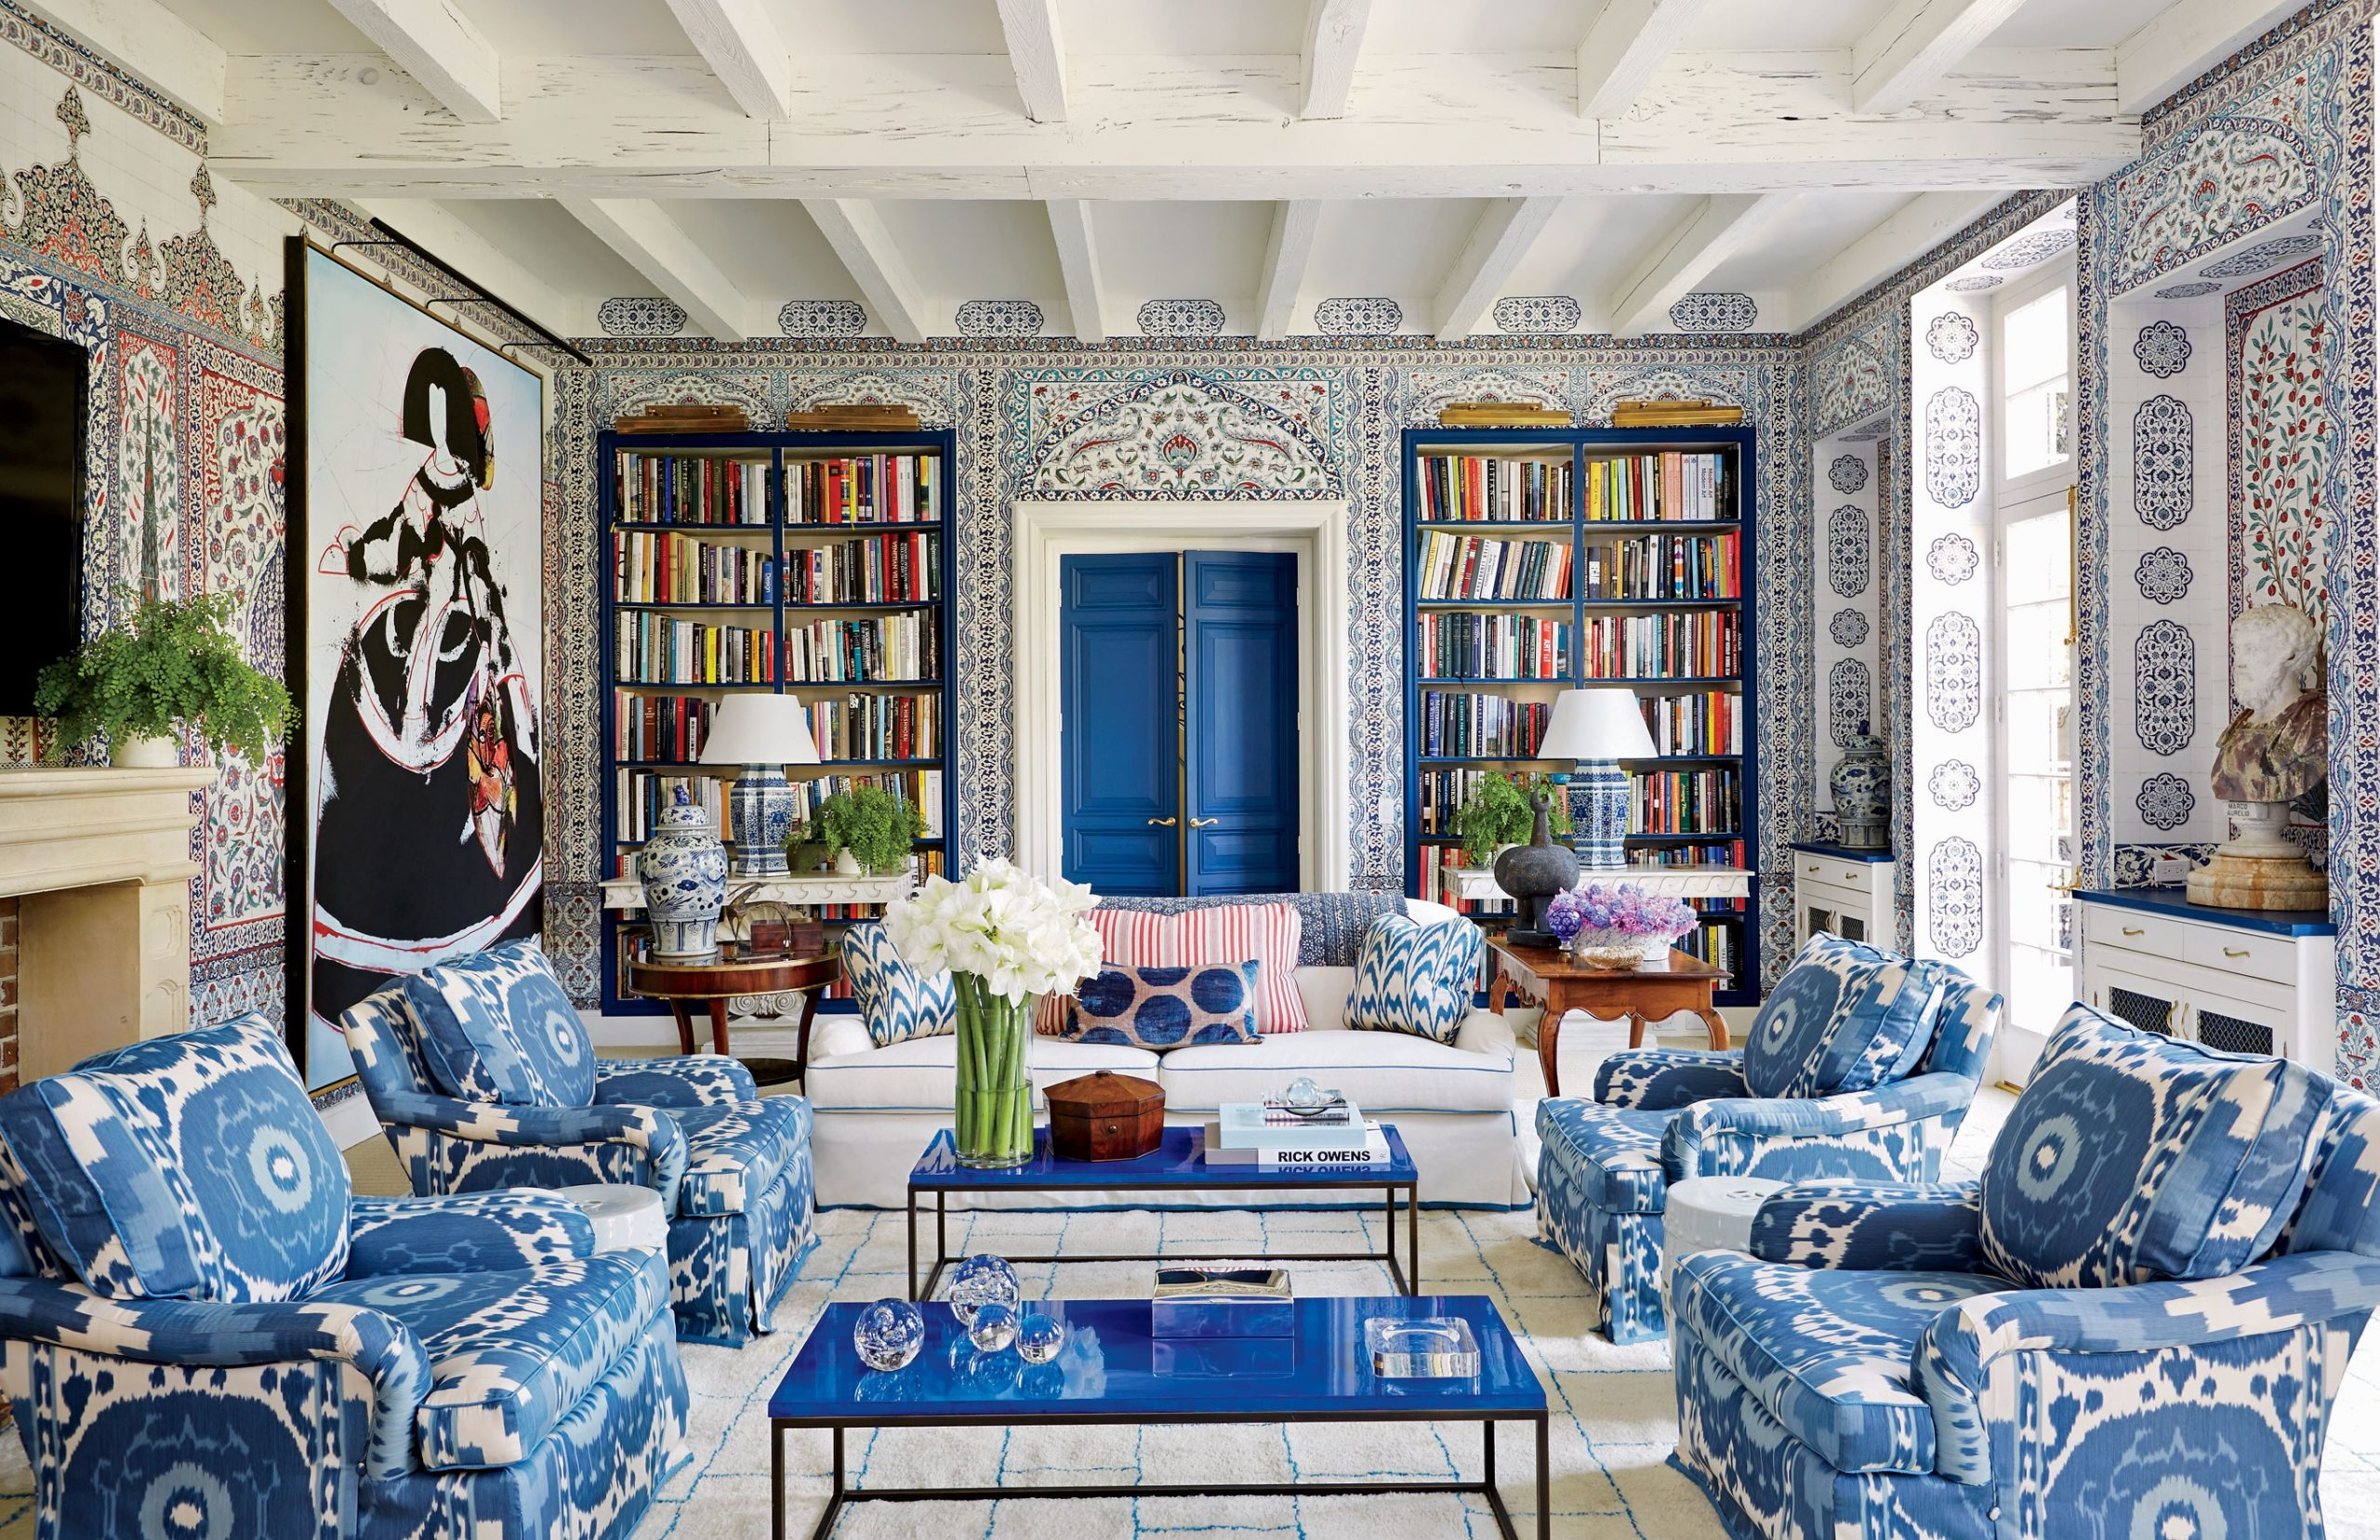 Prints and patterns adorn this beautiful living room